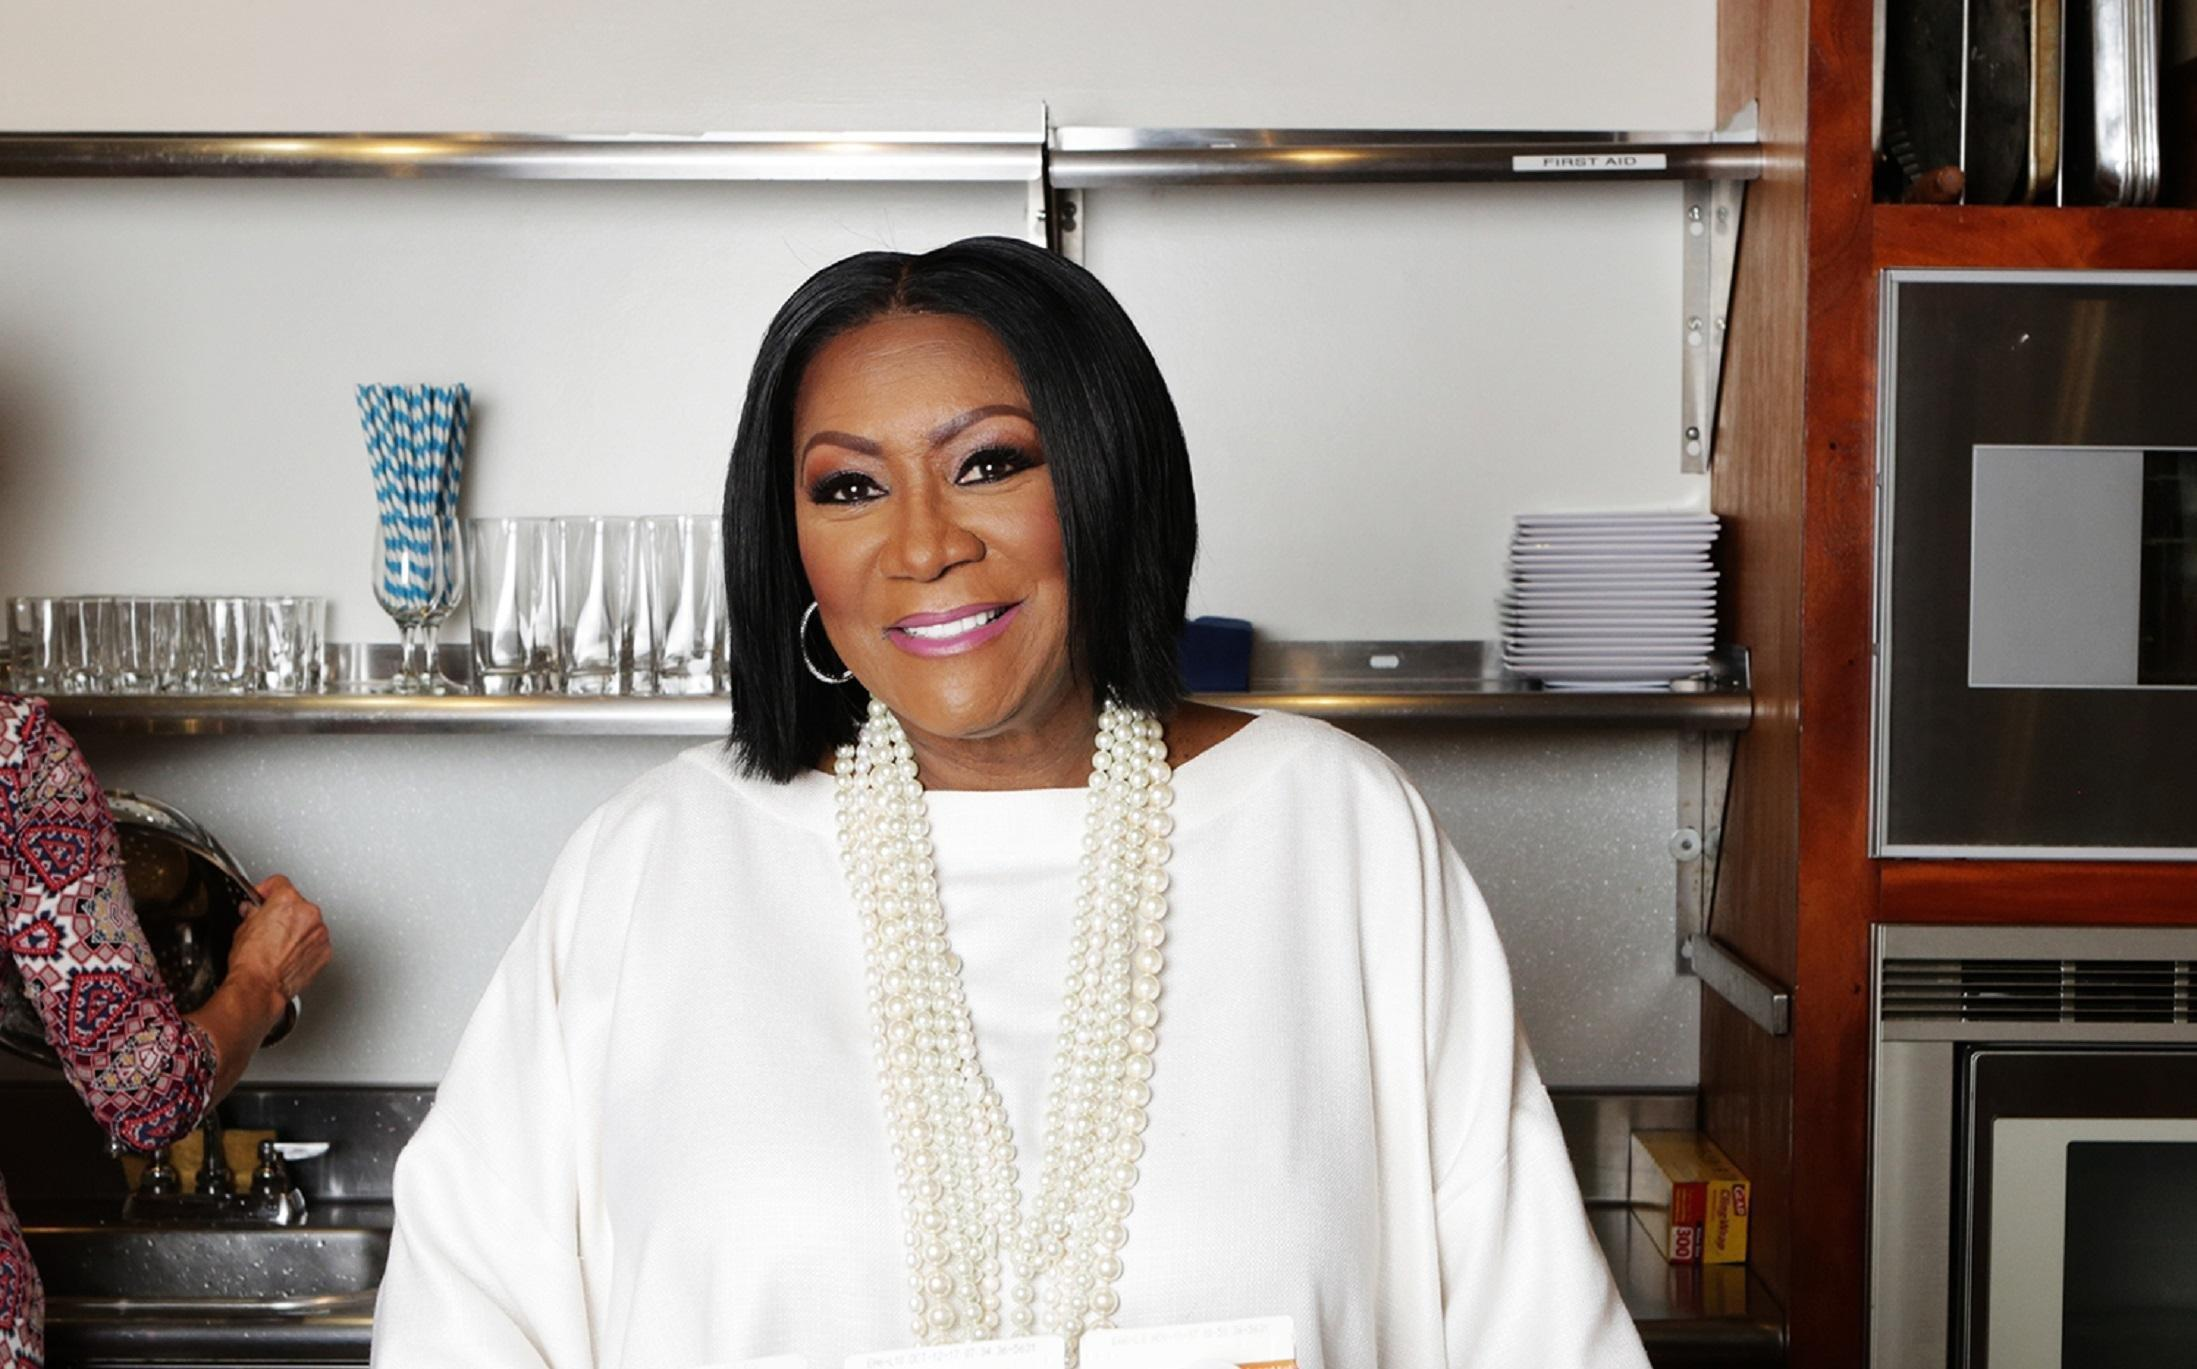 Patti Labelle Doesnt Let Diabetes Keep Her From Enjoying Mac And Cheese